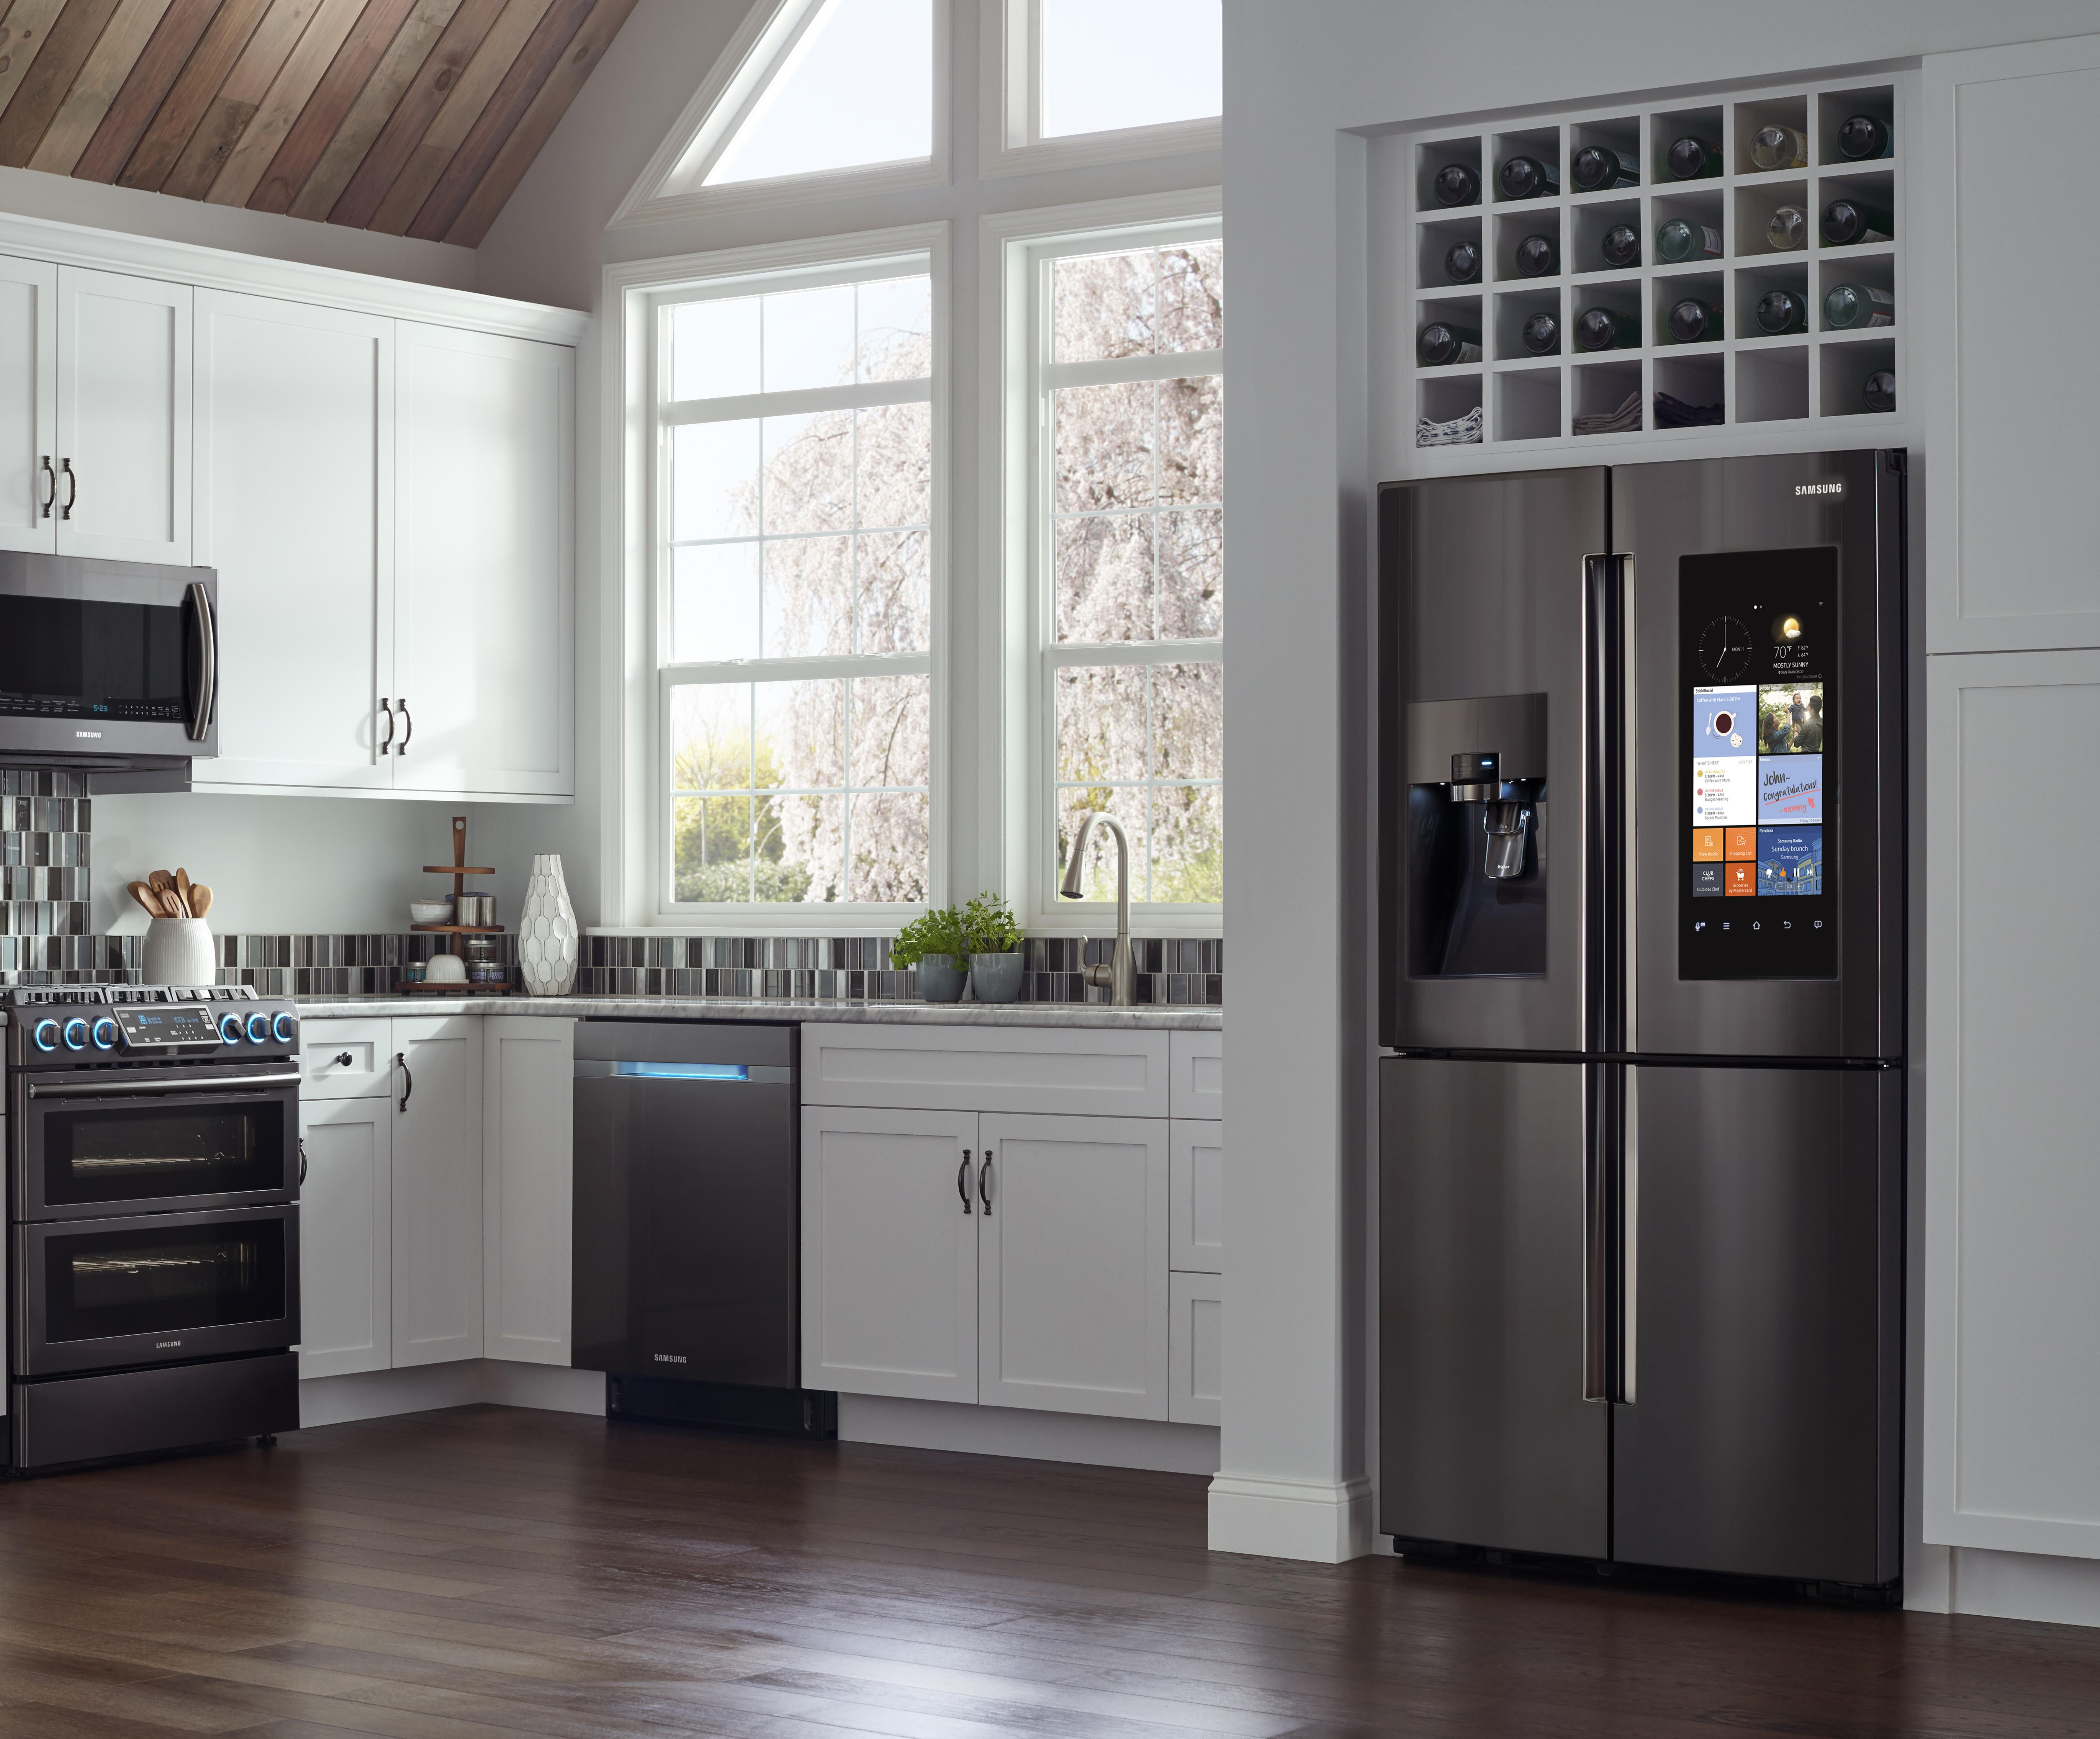 Samsung 36 Quote Black Stainless Steel 28 Cu Ft Family Hub